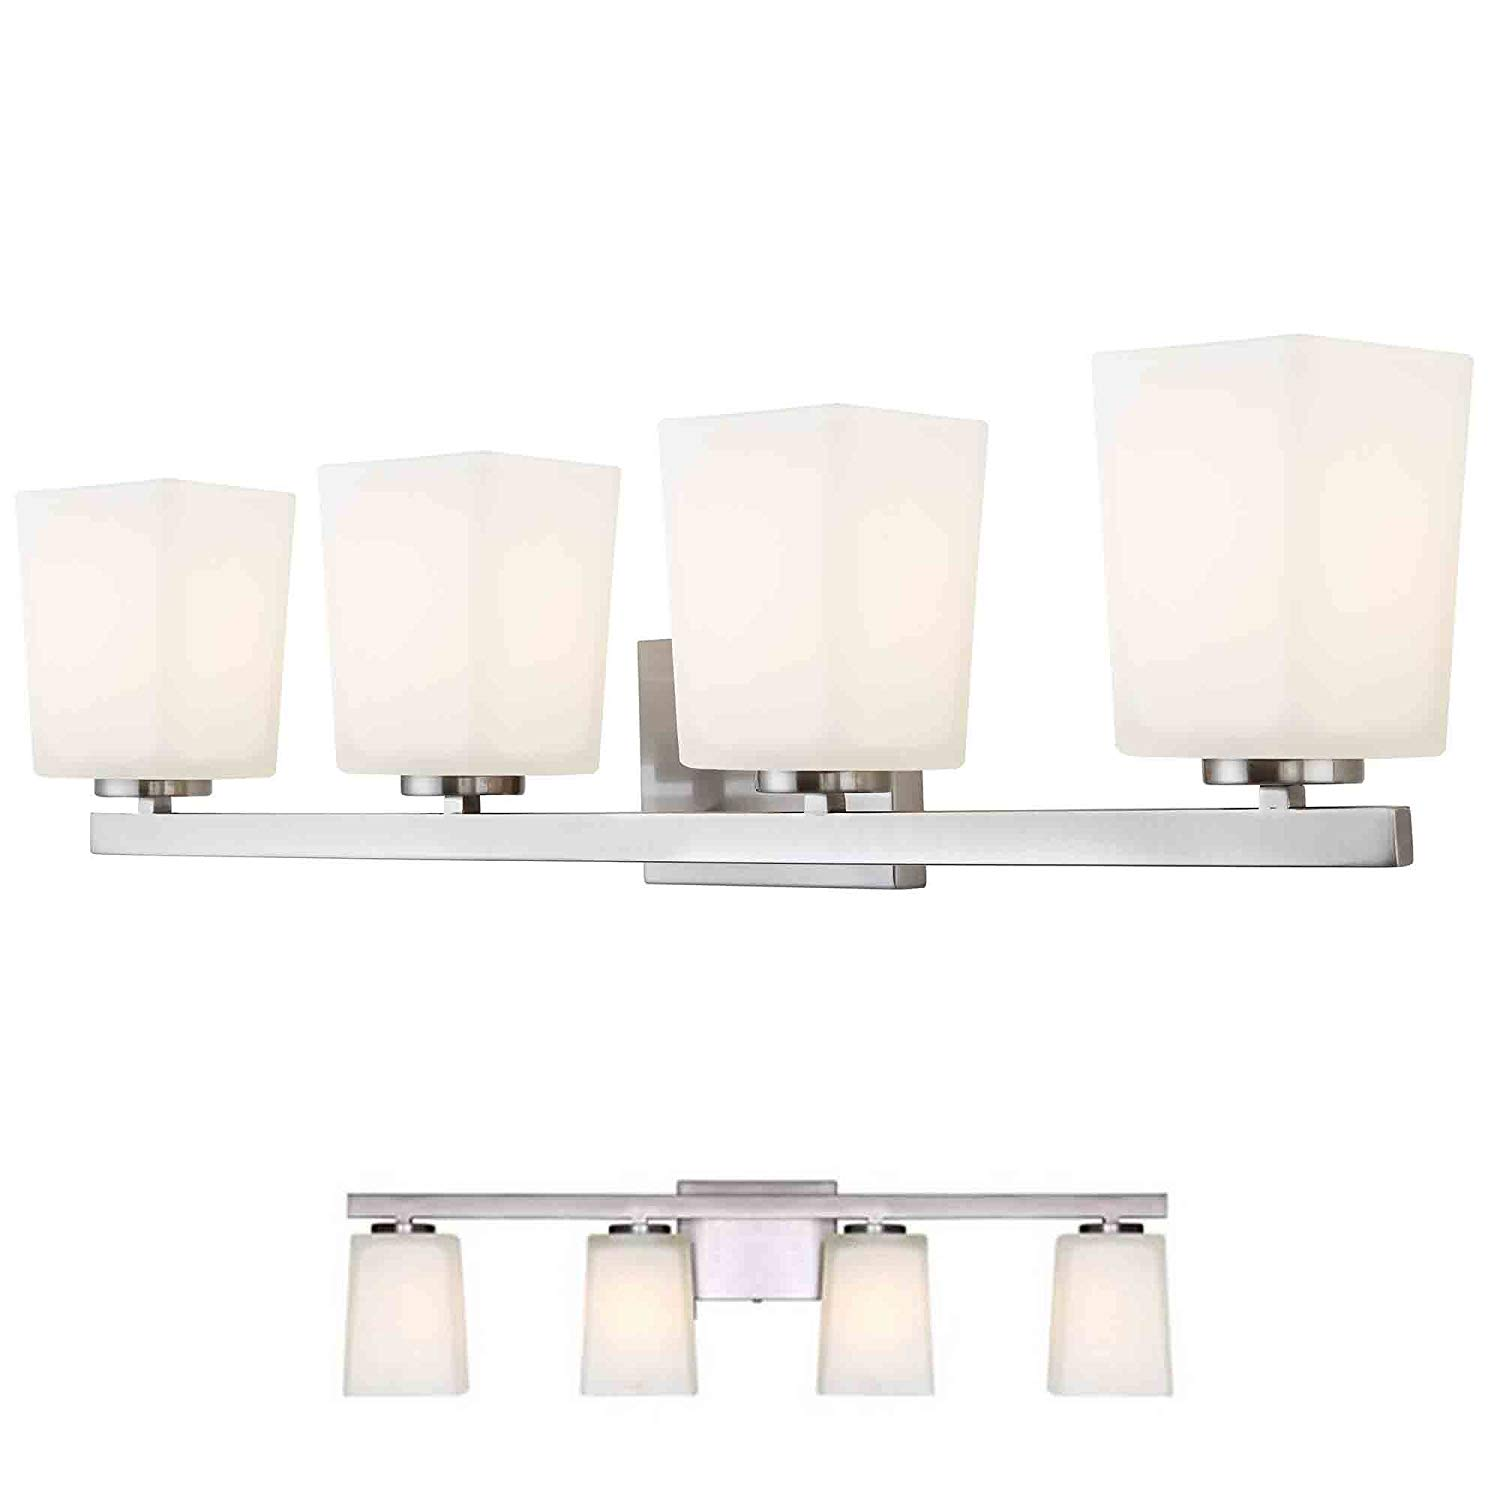 glass light globes light fixture get quotations brushed nickel vanity light fixture bathroom bath bar flat opal glass globes cheap globes find deals on line at